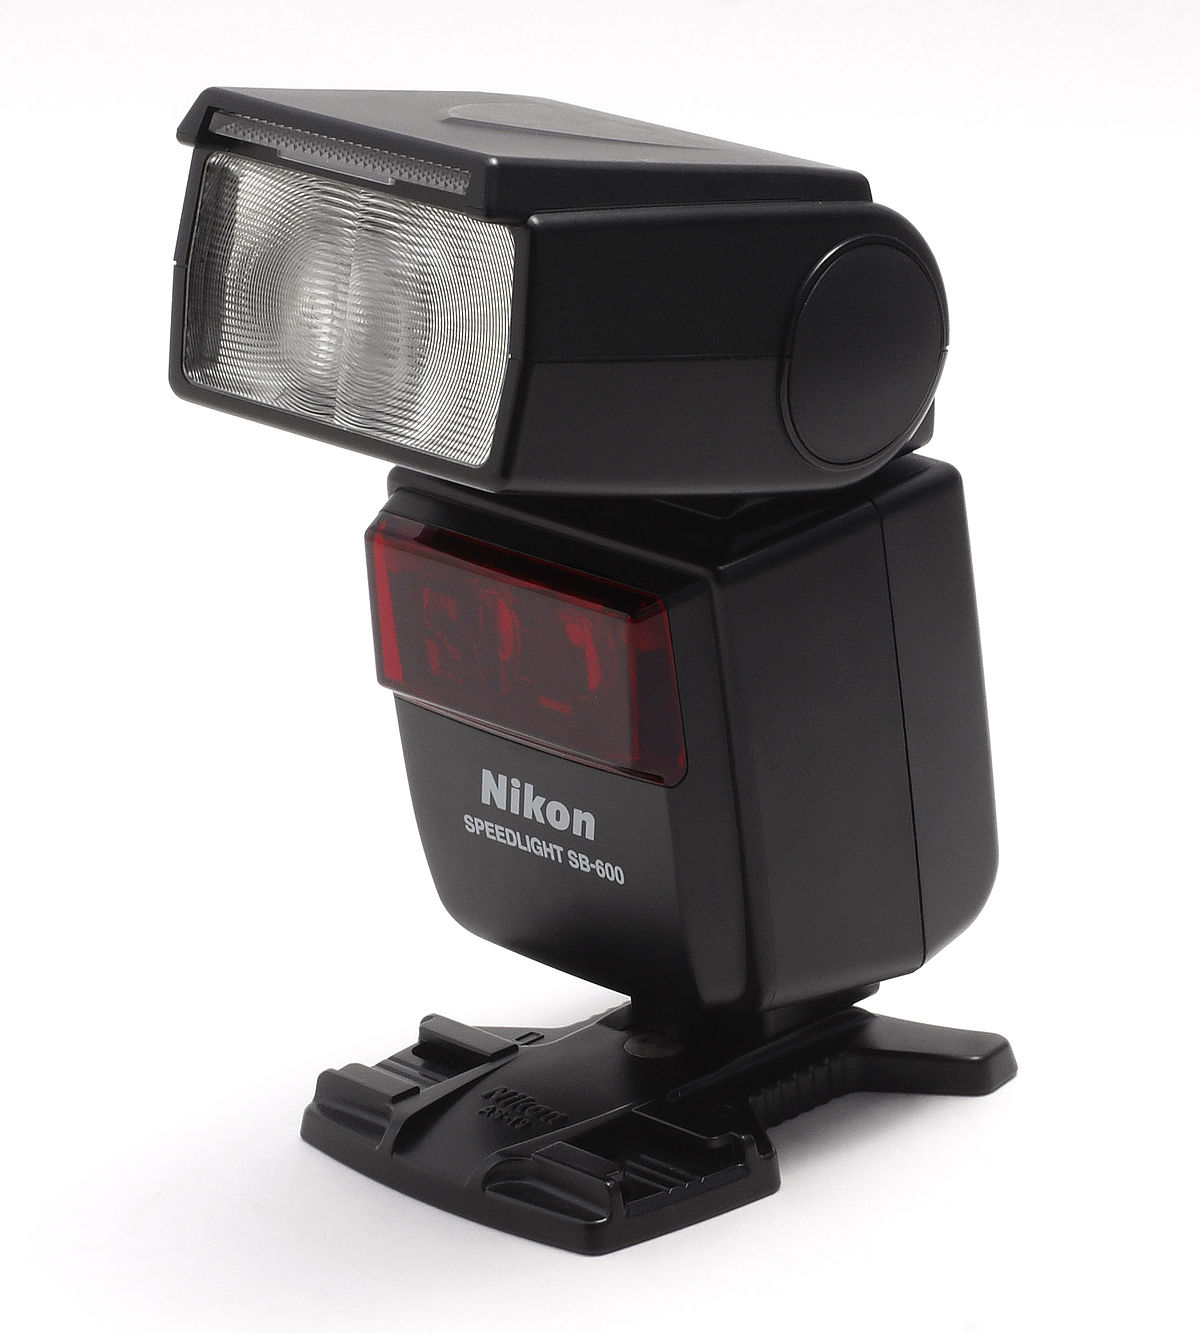 nikon speedlight wikipedia. Black Bedroom Furniture Sets. Home Design Ideas